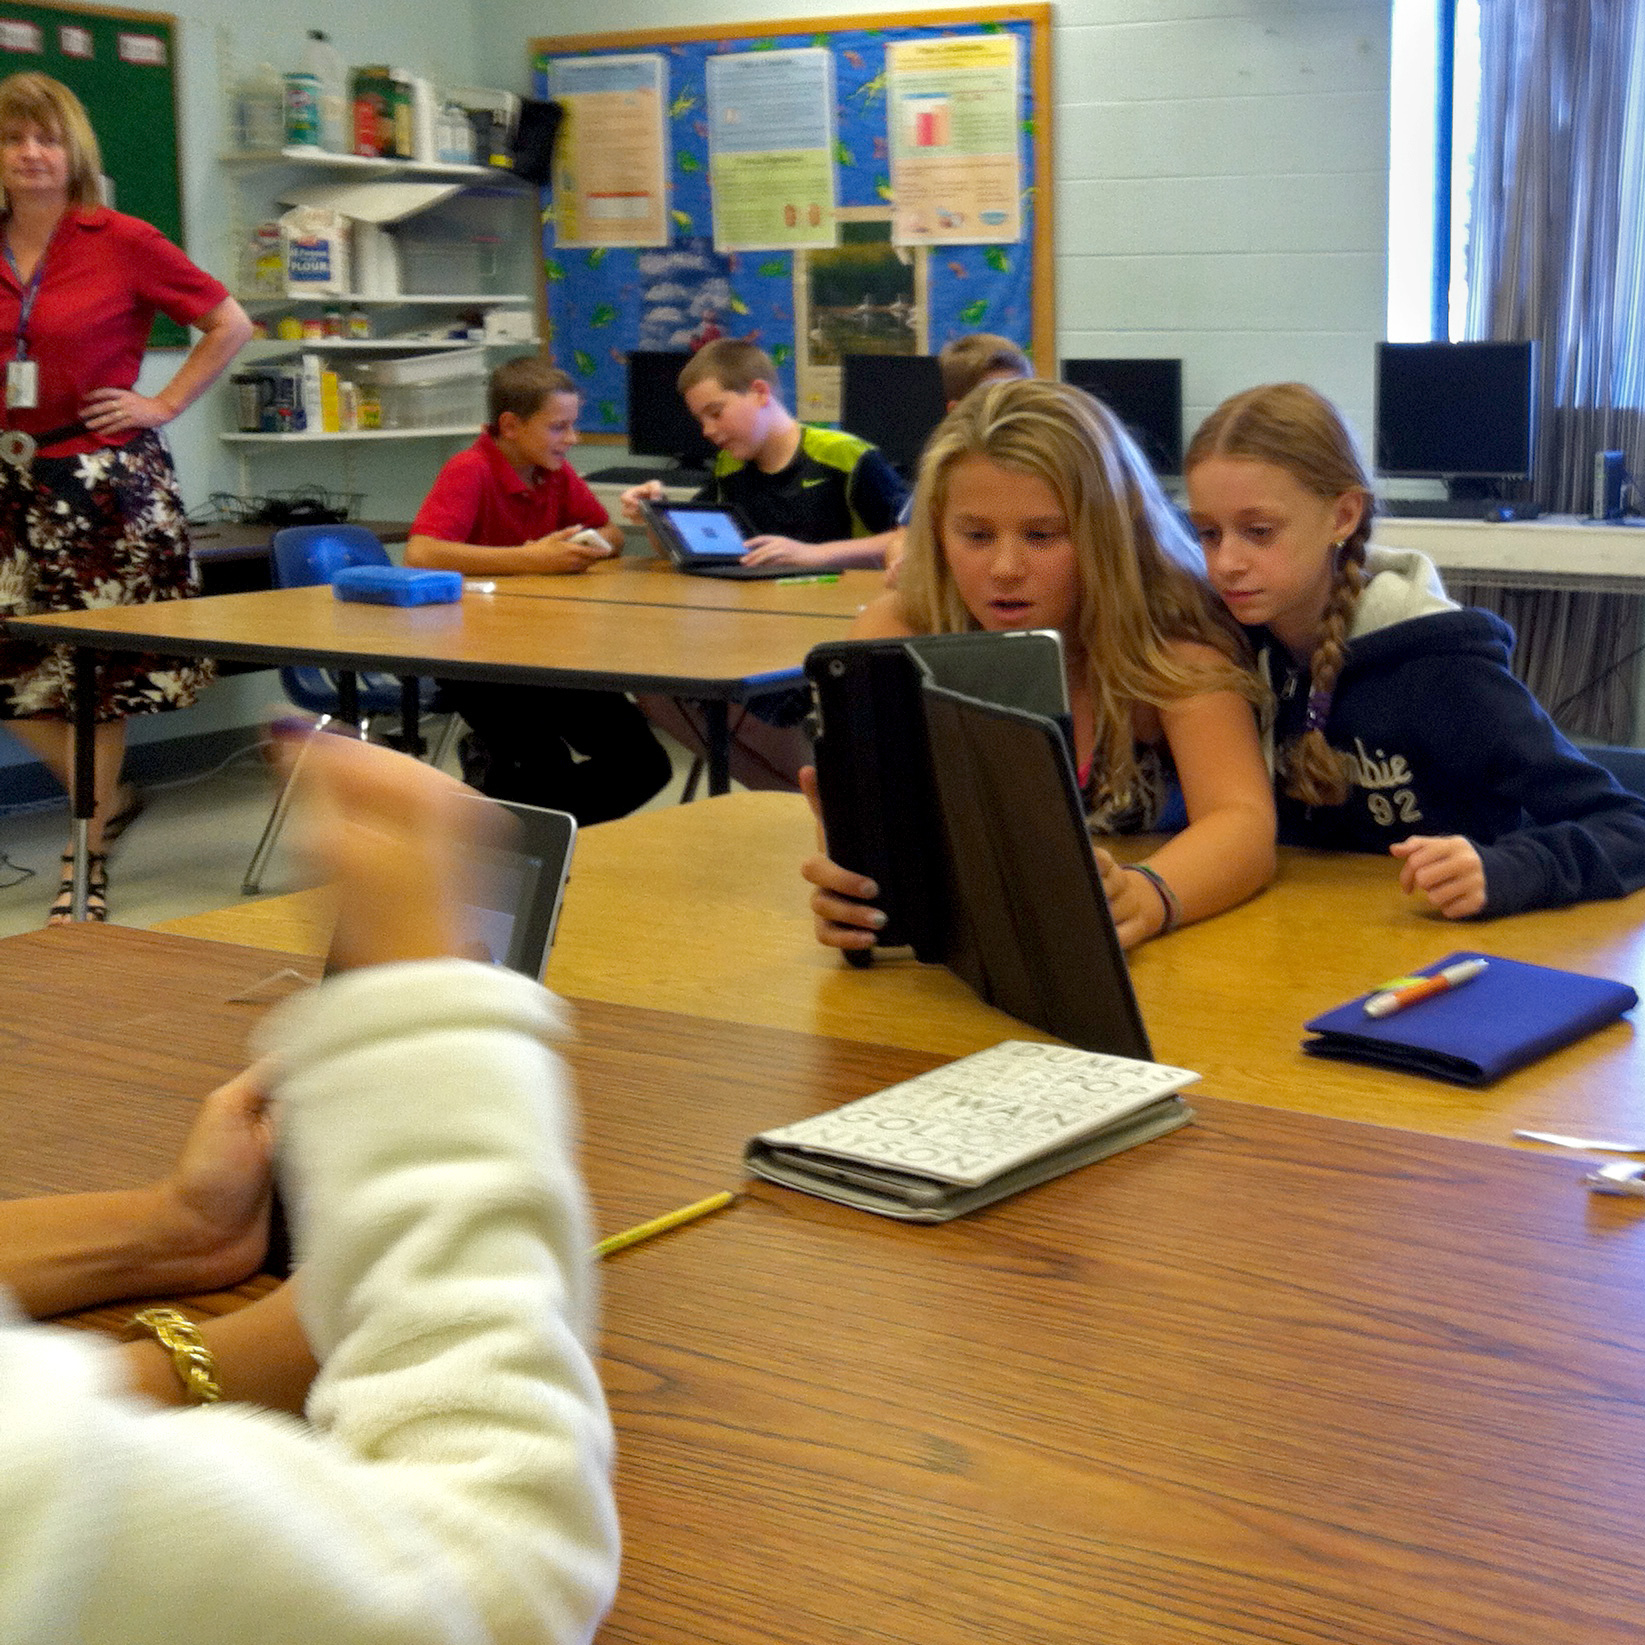 Oyster River students Hannah Croasdale and Jordan Hillyard experiment with Screen Chomp, another free app that teachers hope kids will use to ask each other for help on homework problems.